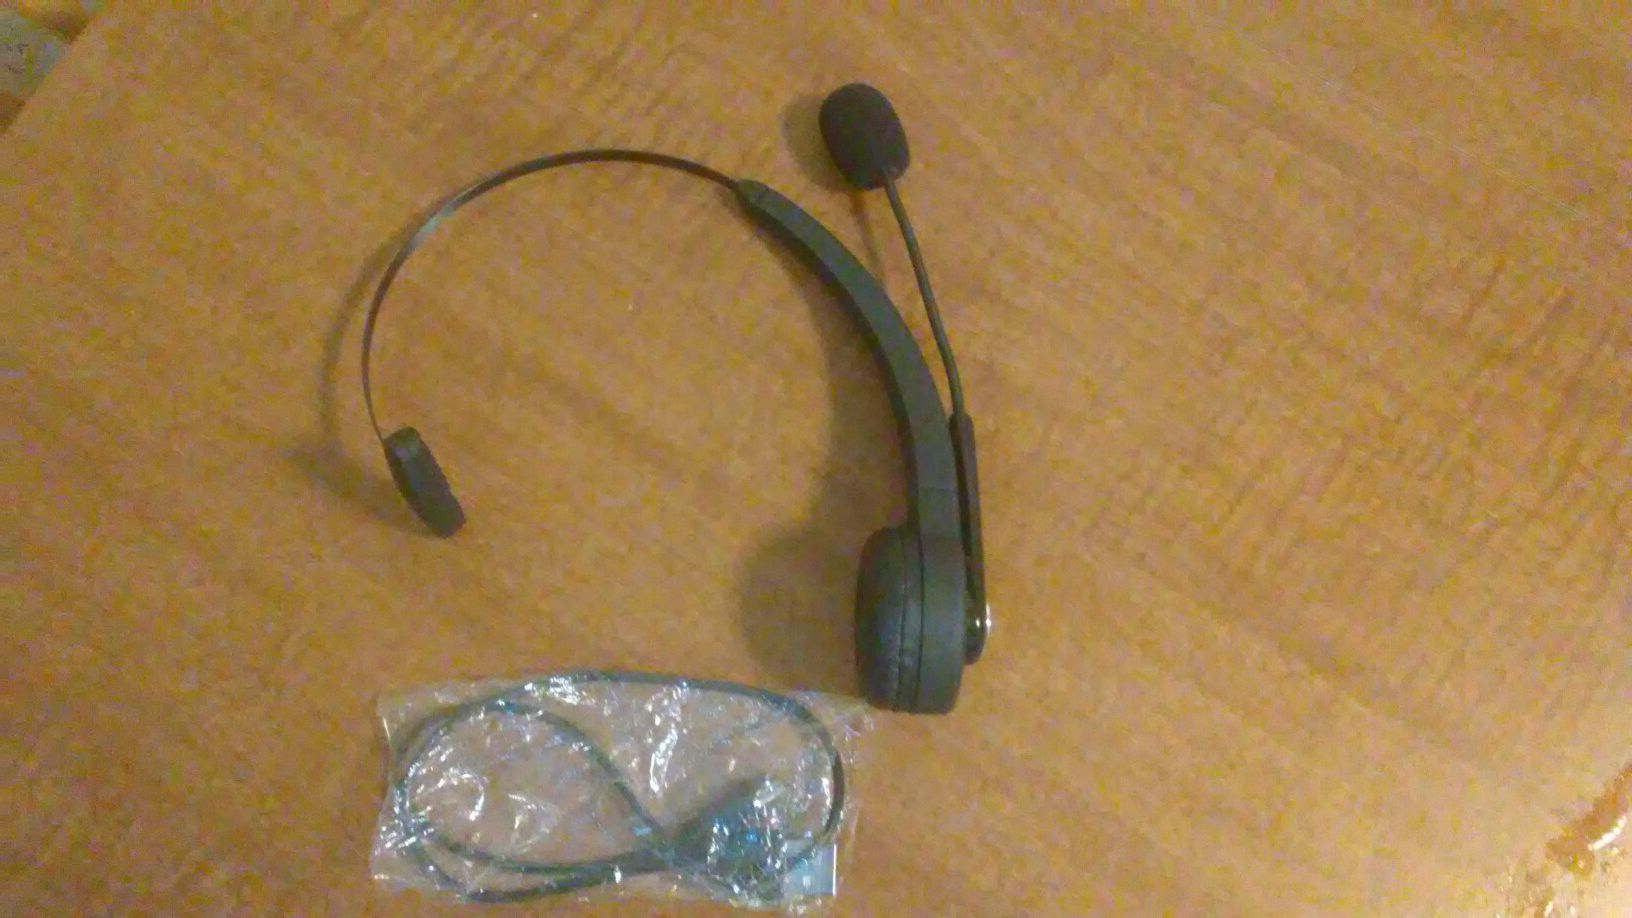 PS3 HEADSET. COMES WITH. WIRELESS CHARGER